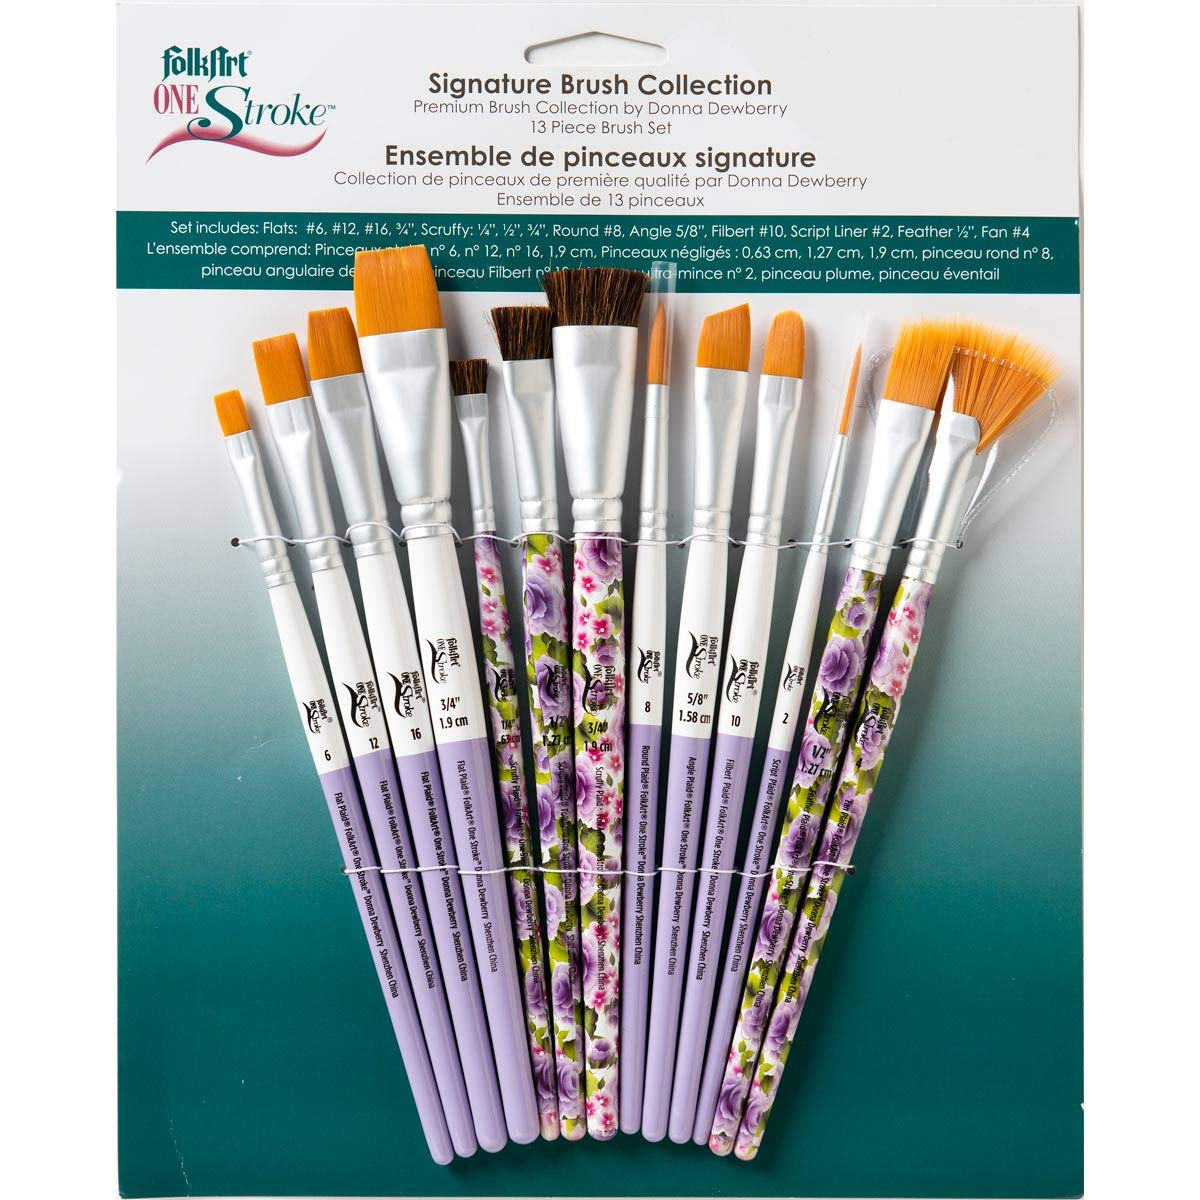 FolkArt One Stroke 1900 Signature Collection Paint Brush Set, 13 Piece by FolkArt One Stroke